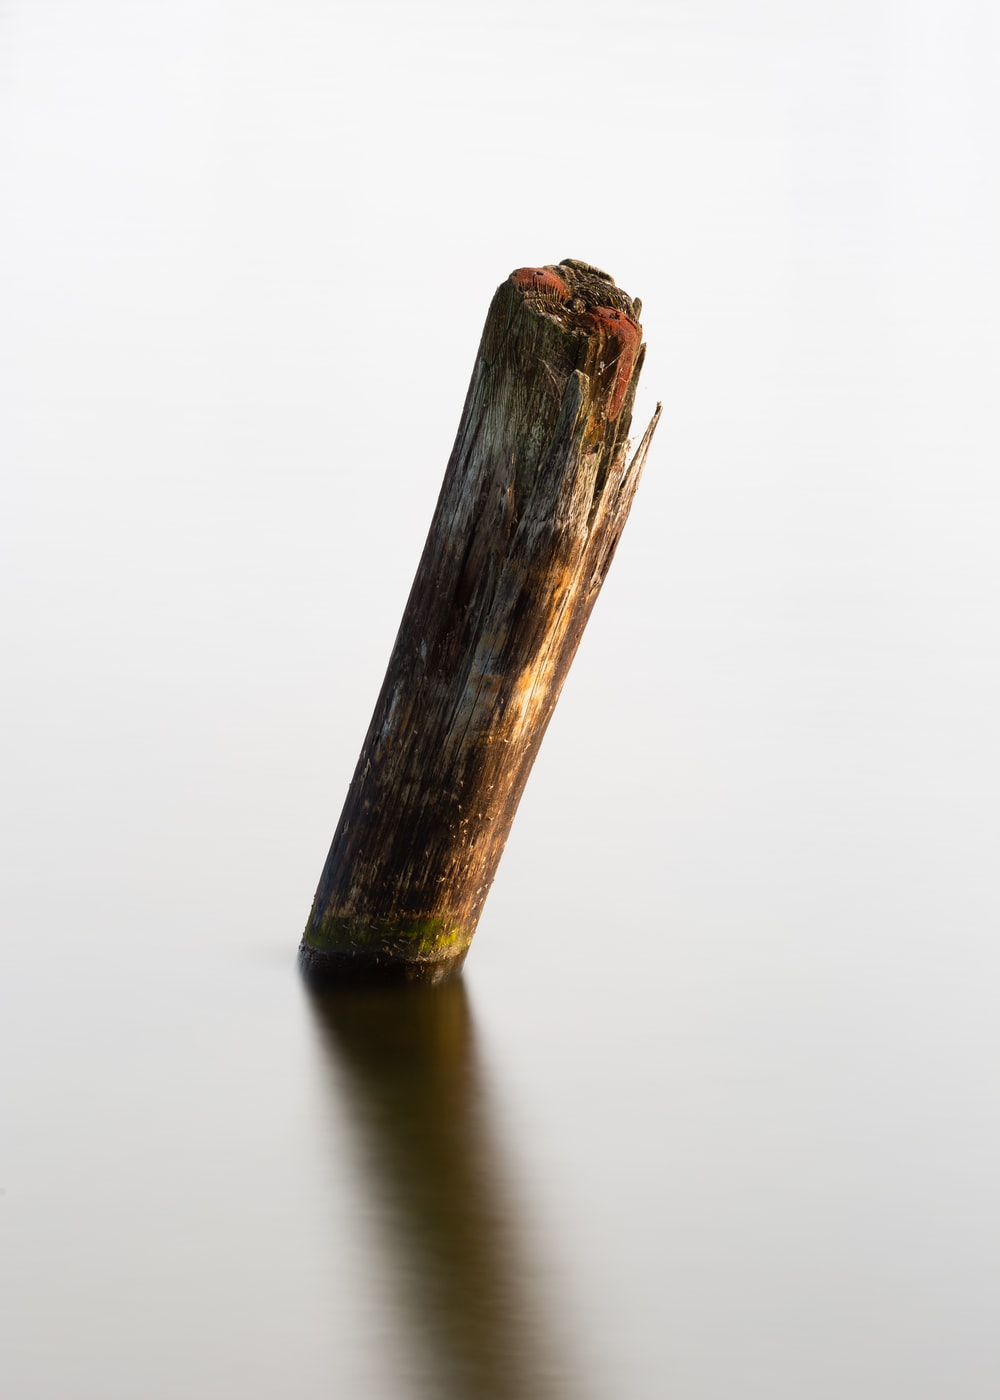 brown wooden stick in body of water